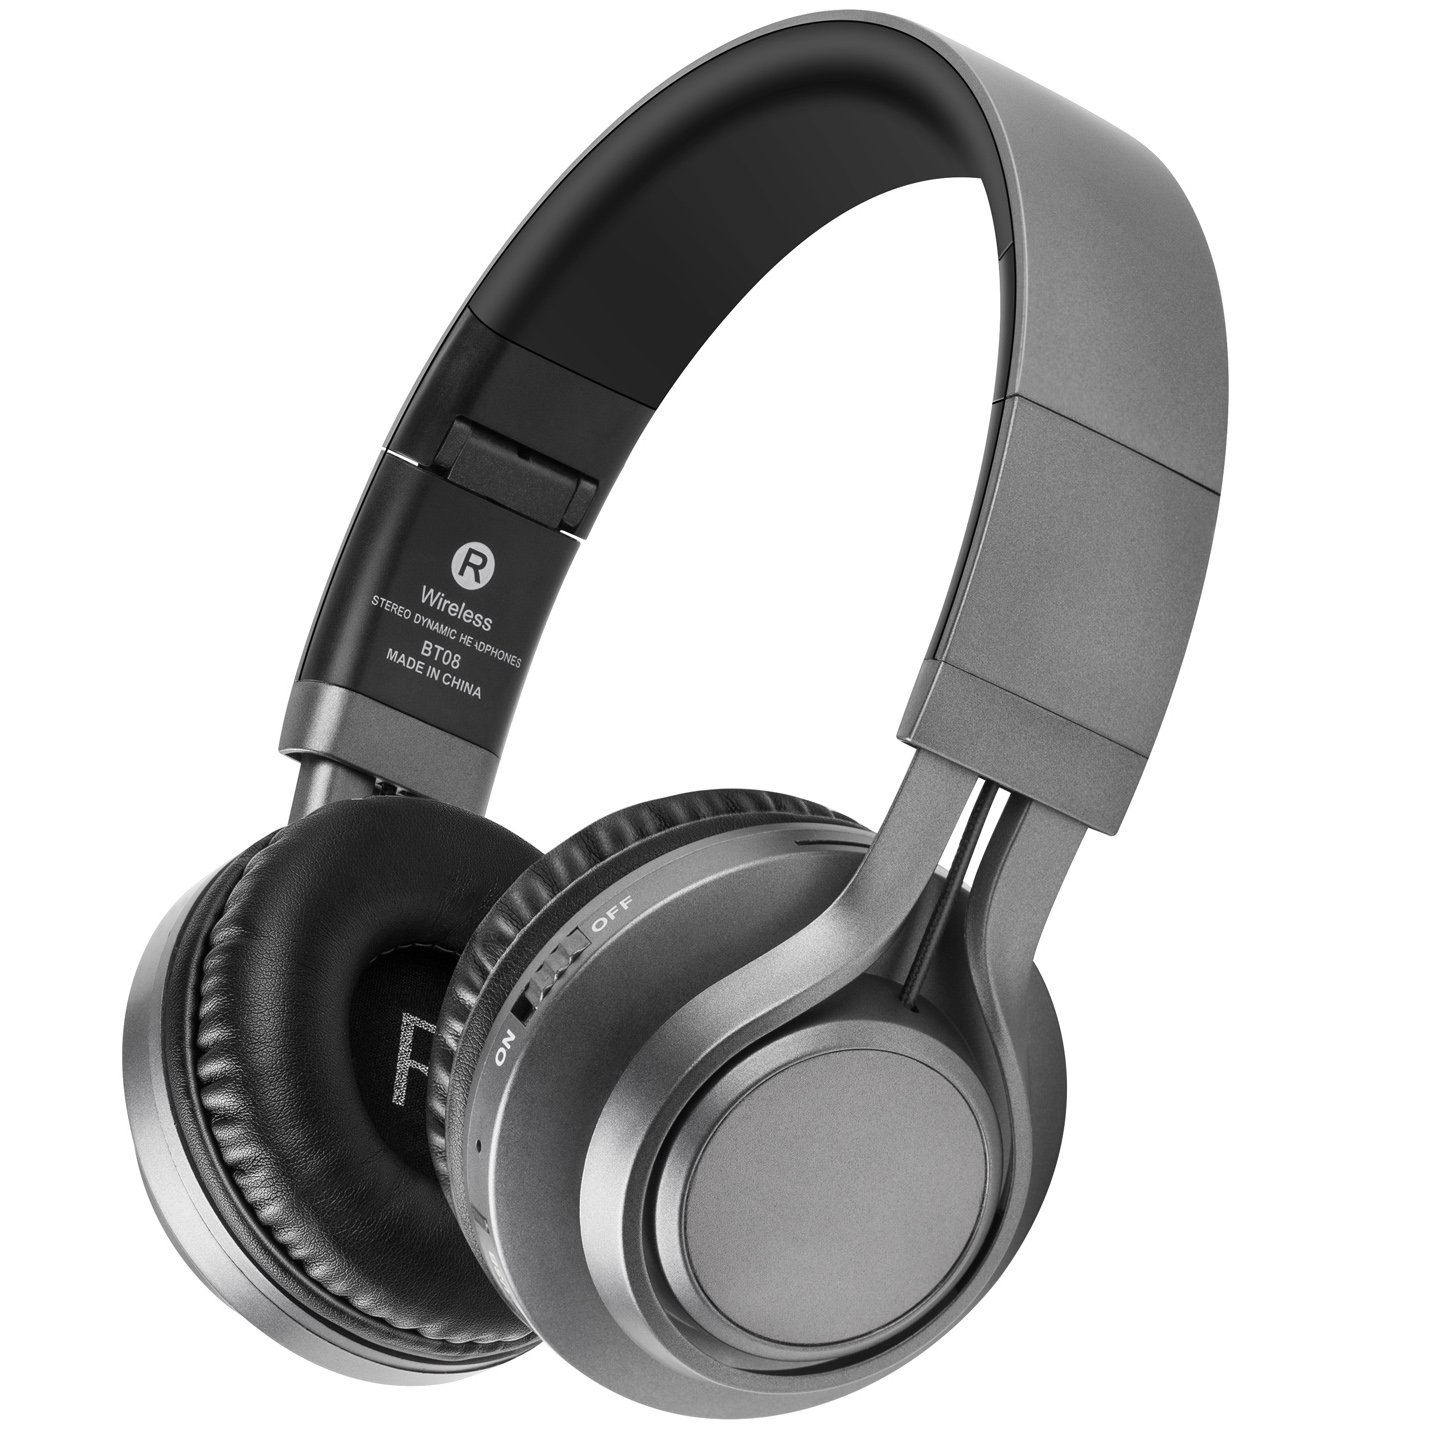 Bluetooth Headphones with Mic, HiFi Stereo Wireless Headphones 40 MM Drive, 8 Hrs Playtime Foldable Headset, Support TF Card, FM Radio Wired&Wireless Mode for PC Cellphone TV (Black Gray) Picun 653391937037